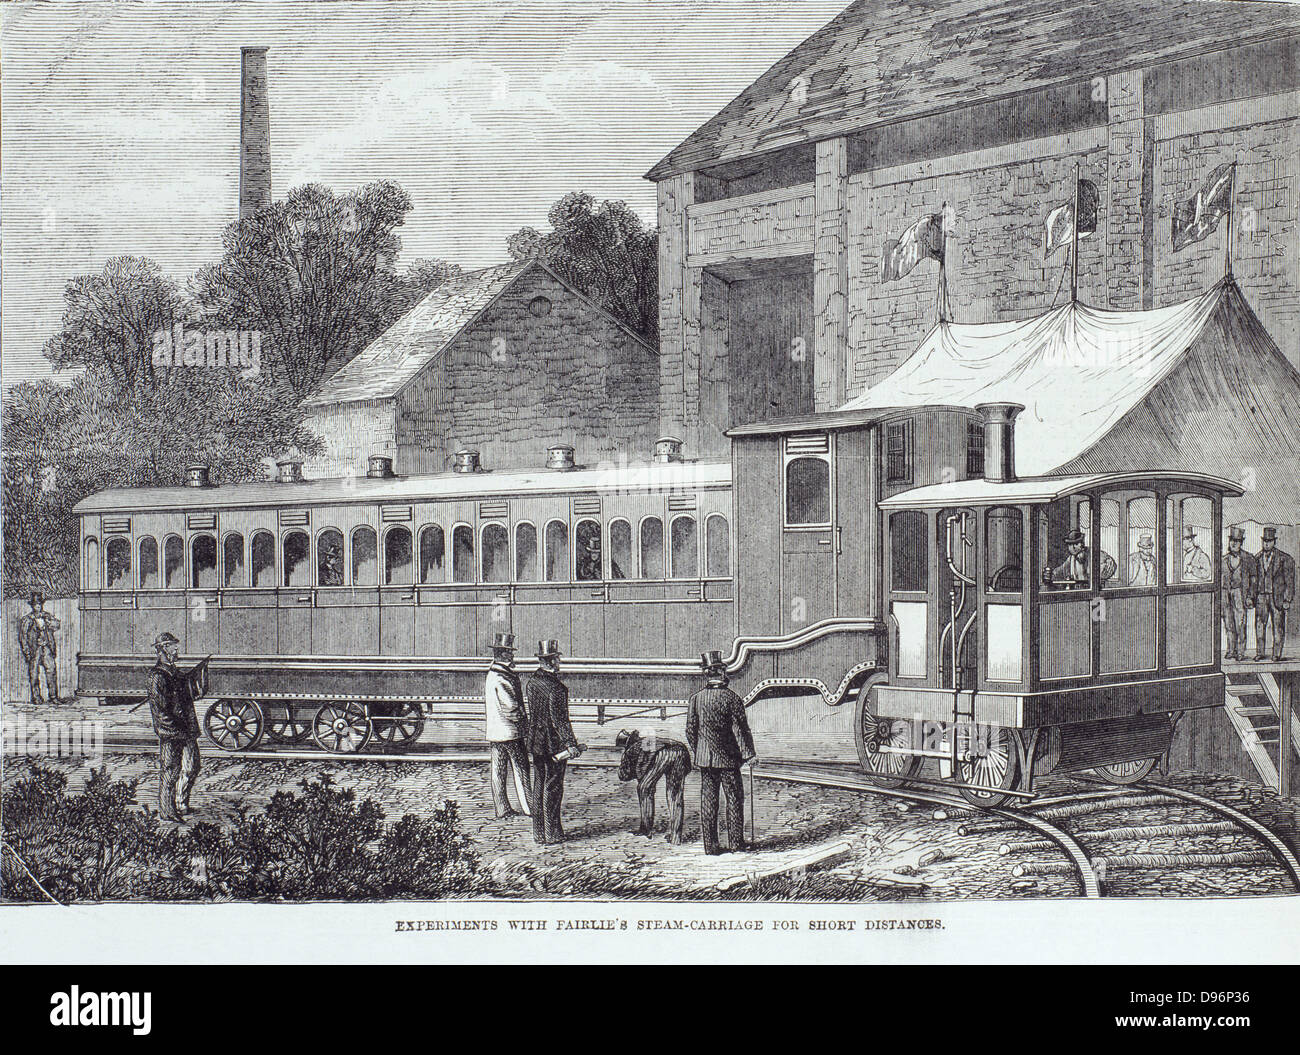 Fairlie's Steam Carriage.  Light railway steam locomotive for use on branch lines. 1869 Stock Photo